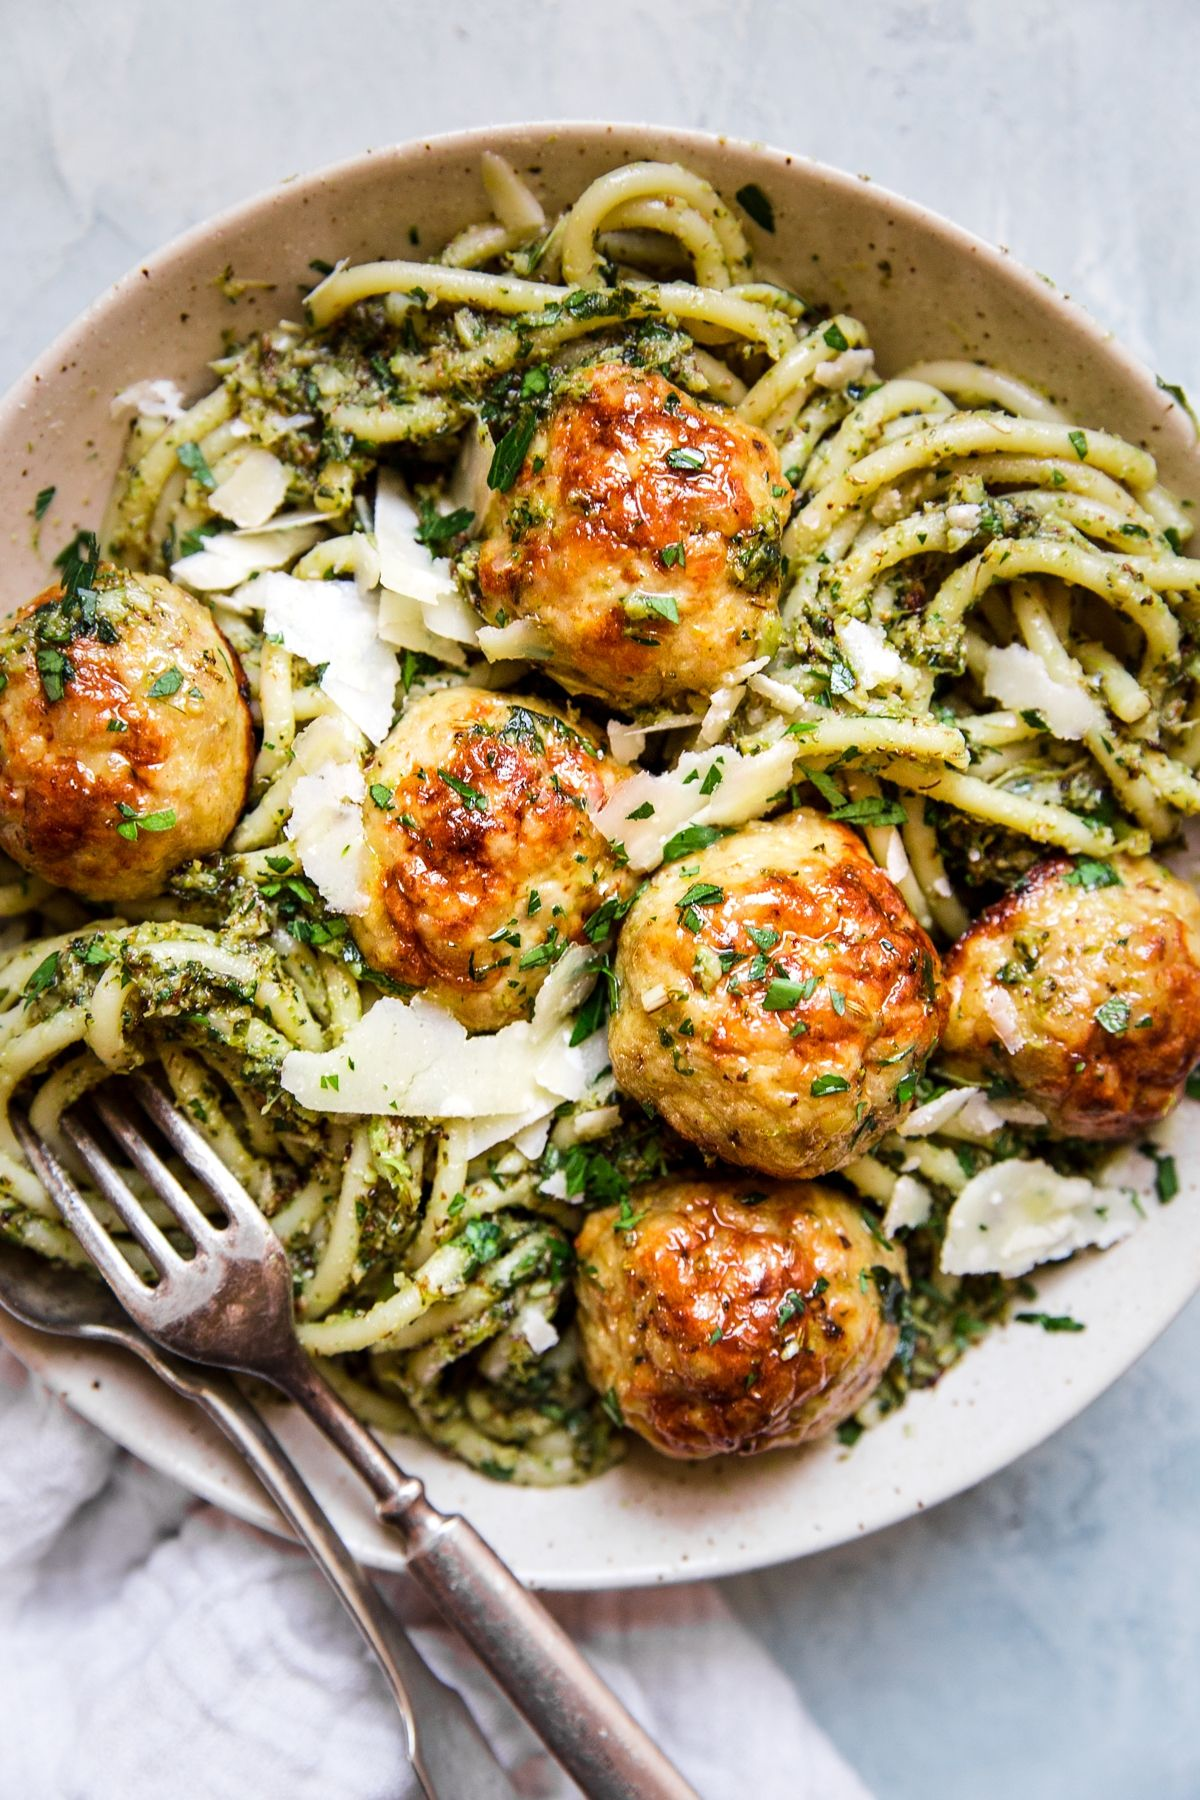 Baked Chicken Meatballs with Broccoli Pesto Pasta by The Modern Proper || With just five ingredients, these parmesan-loaded baked chicken meatballs are good any way you serve them. But, paired with a hearty roasted broccoli pesto and pesto, they make for a lovable feast.